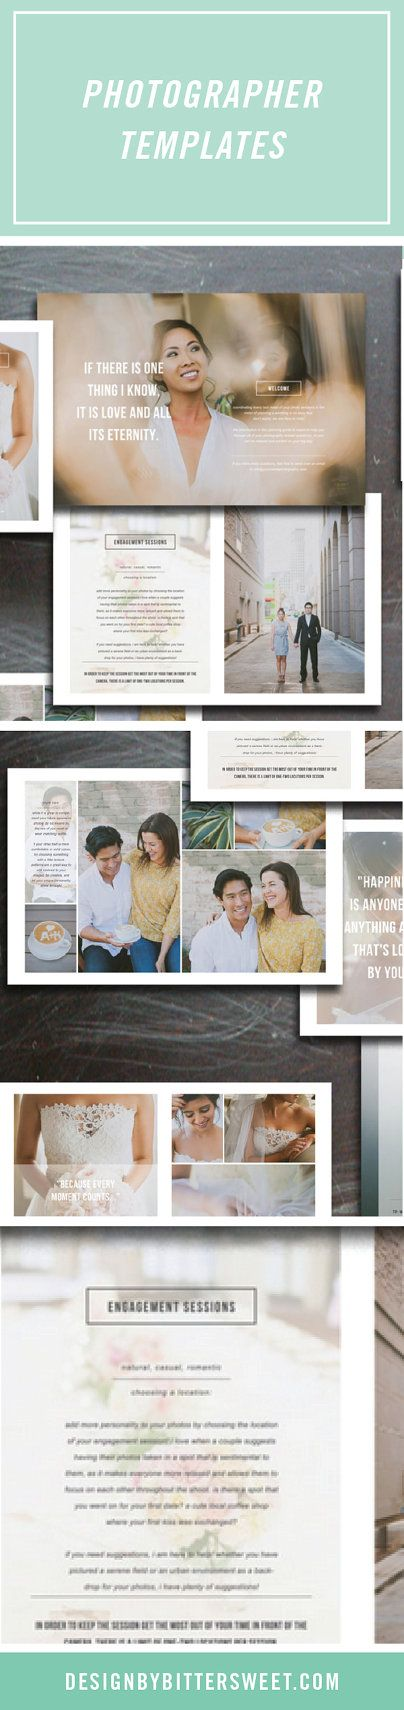 Photography Magazine Template by designbybittersweet #weddingphotography photography branding materials.